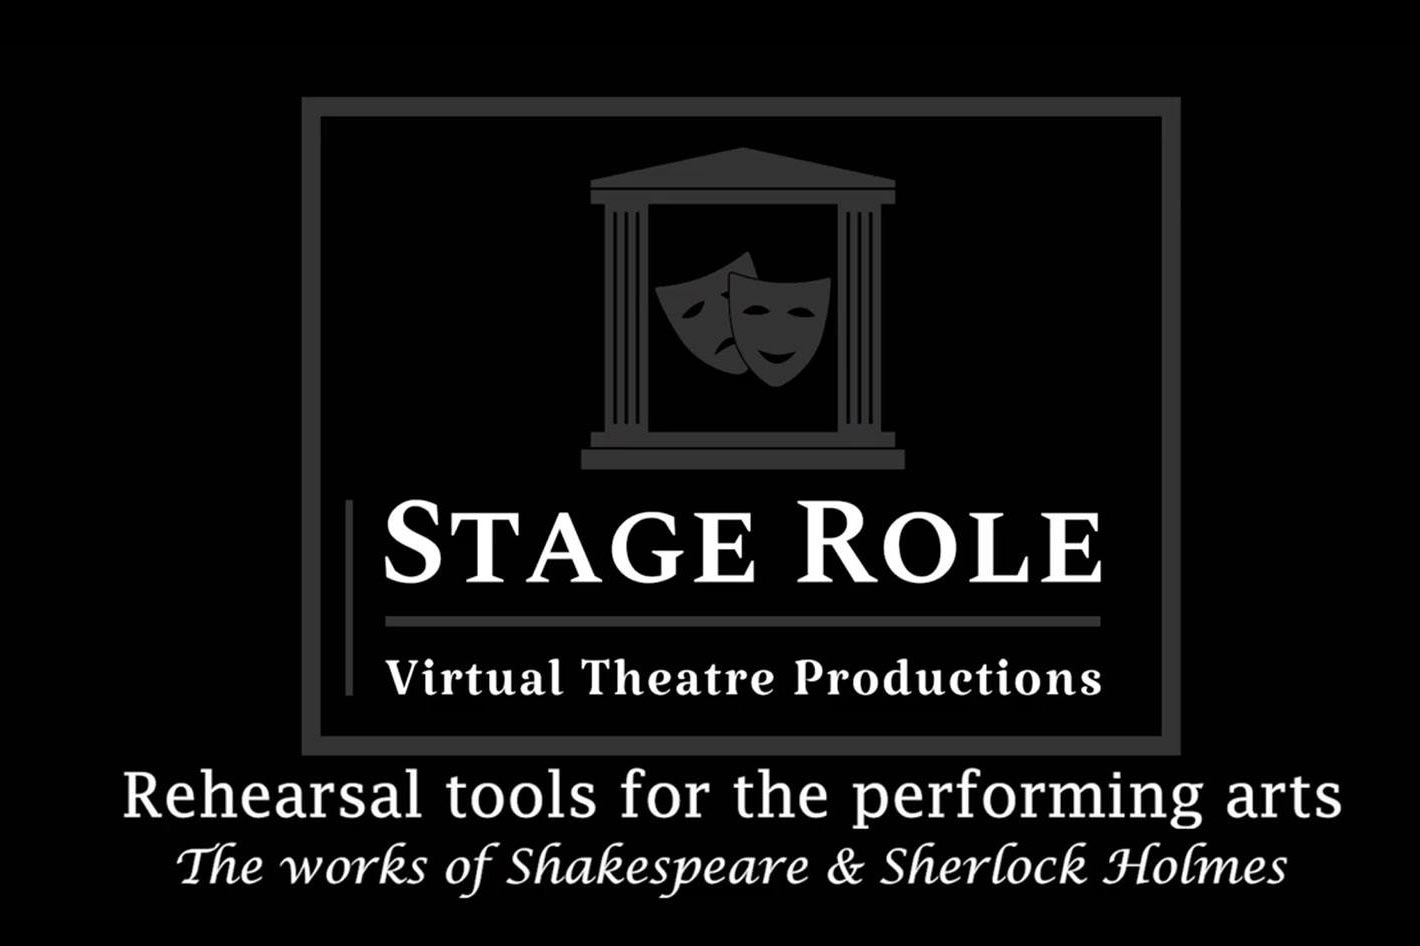 StageRole: a WFH rehearsal tool for the performing arts